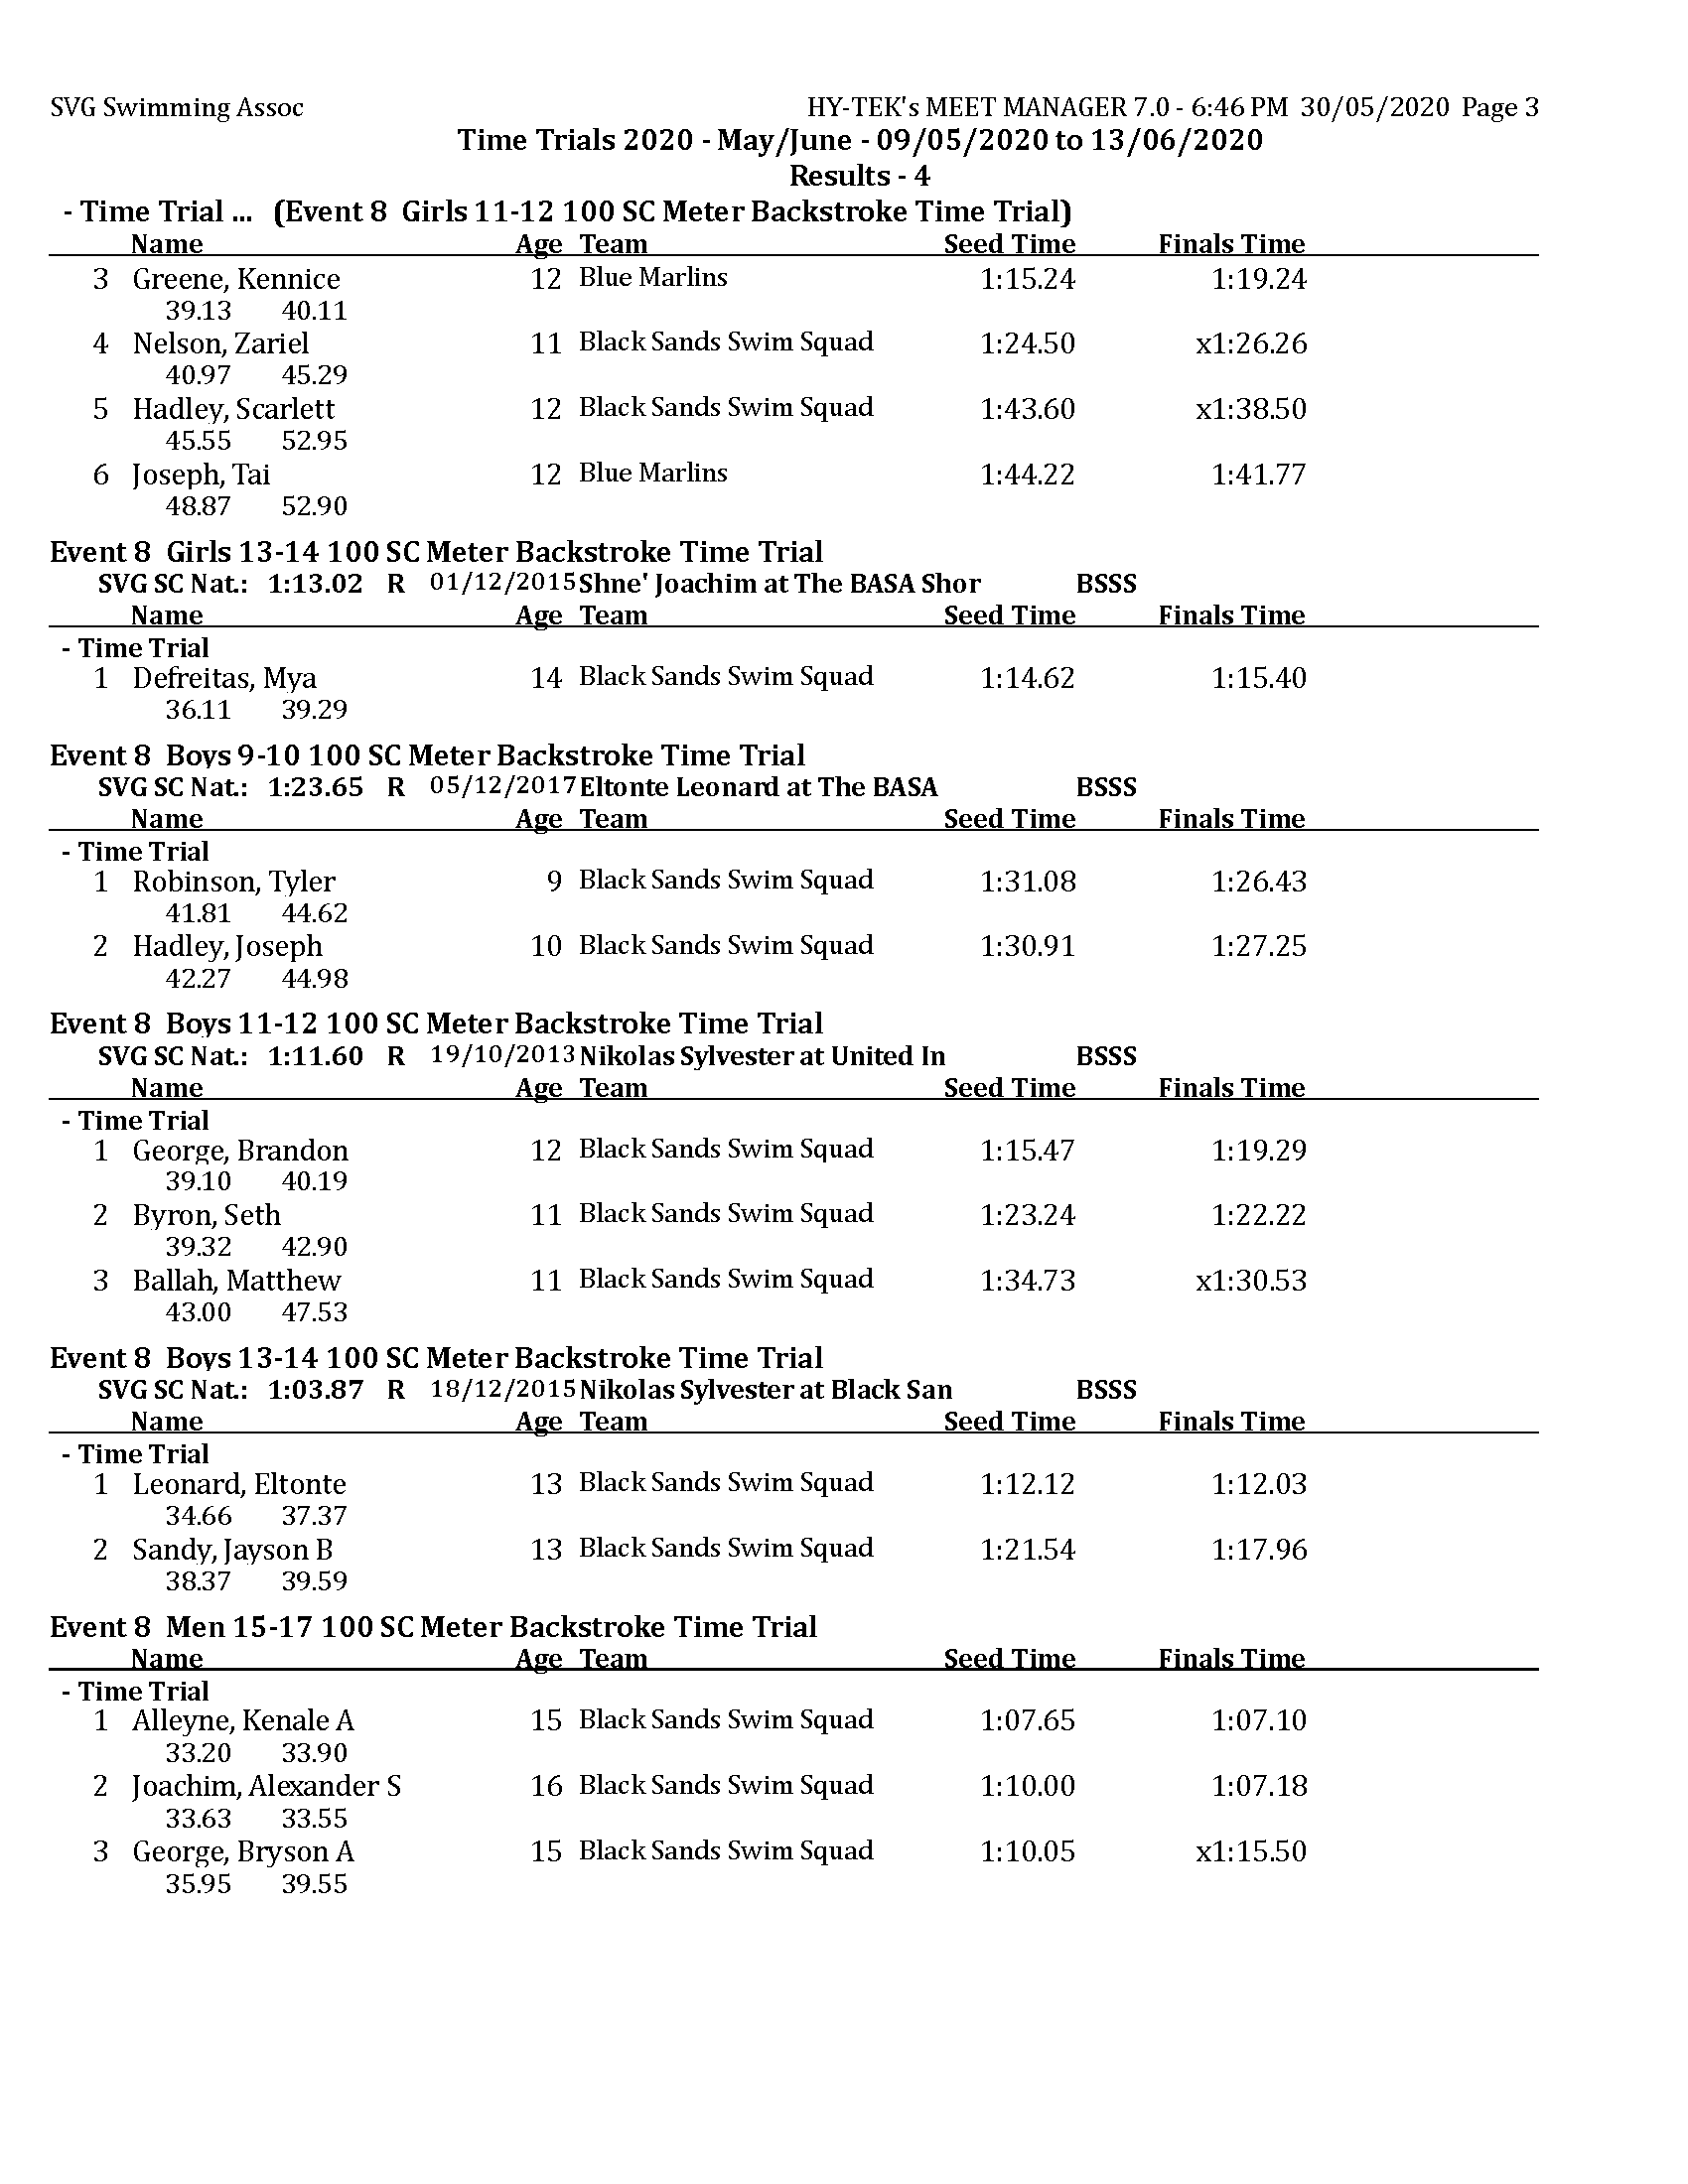 TT 2020 - May - Results day 4 MM_Page_3